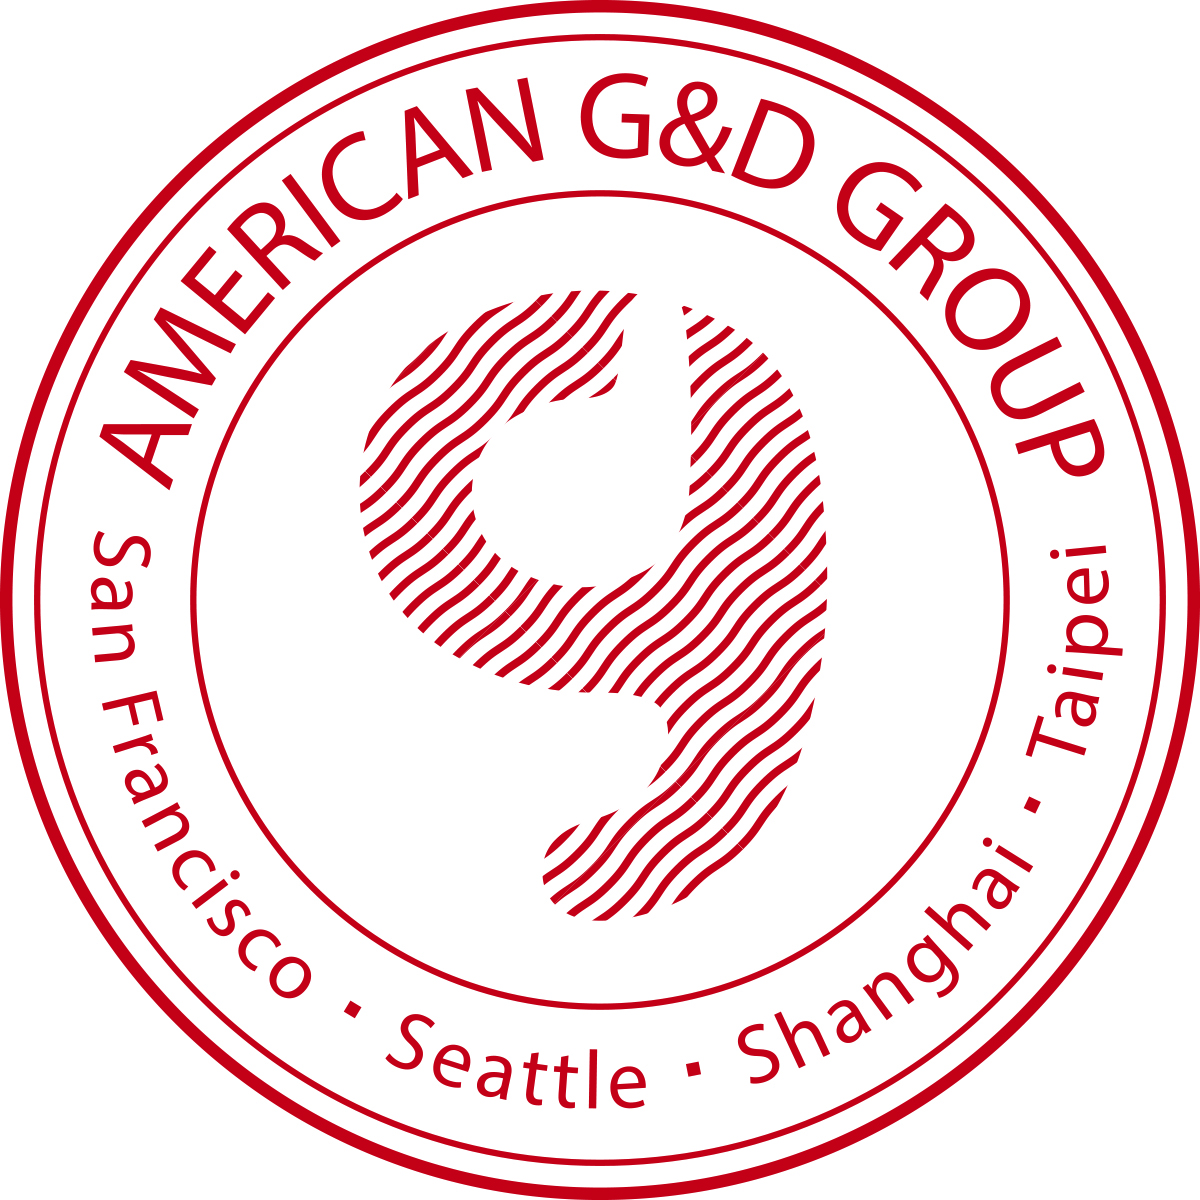 American G&D Group